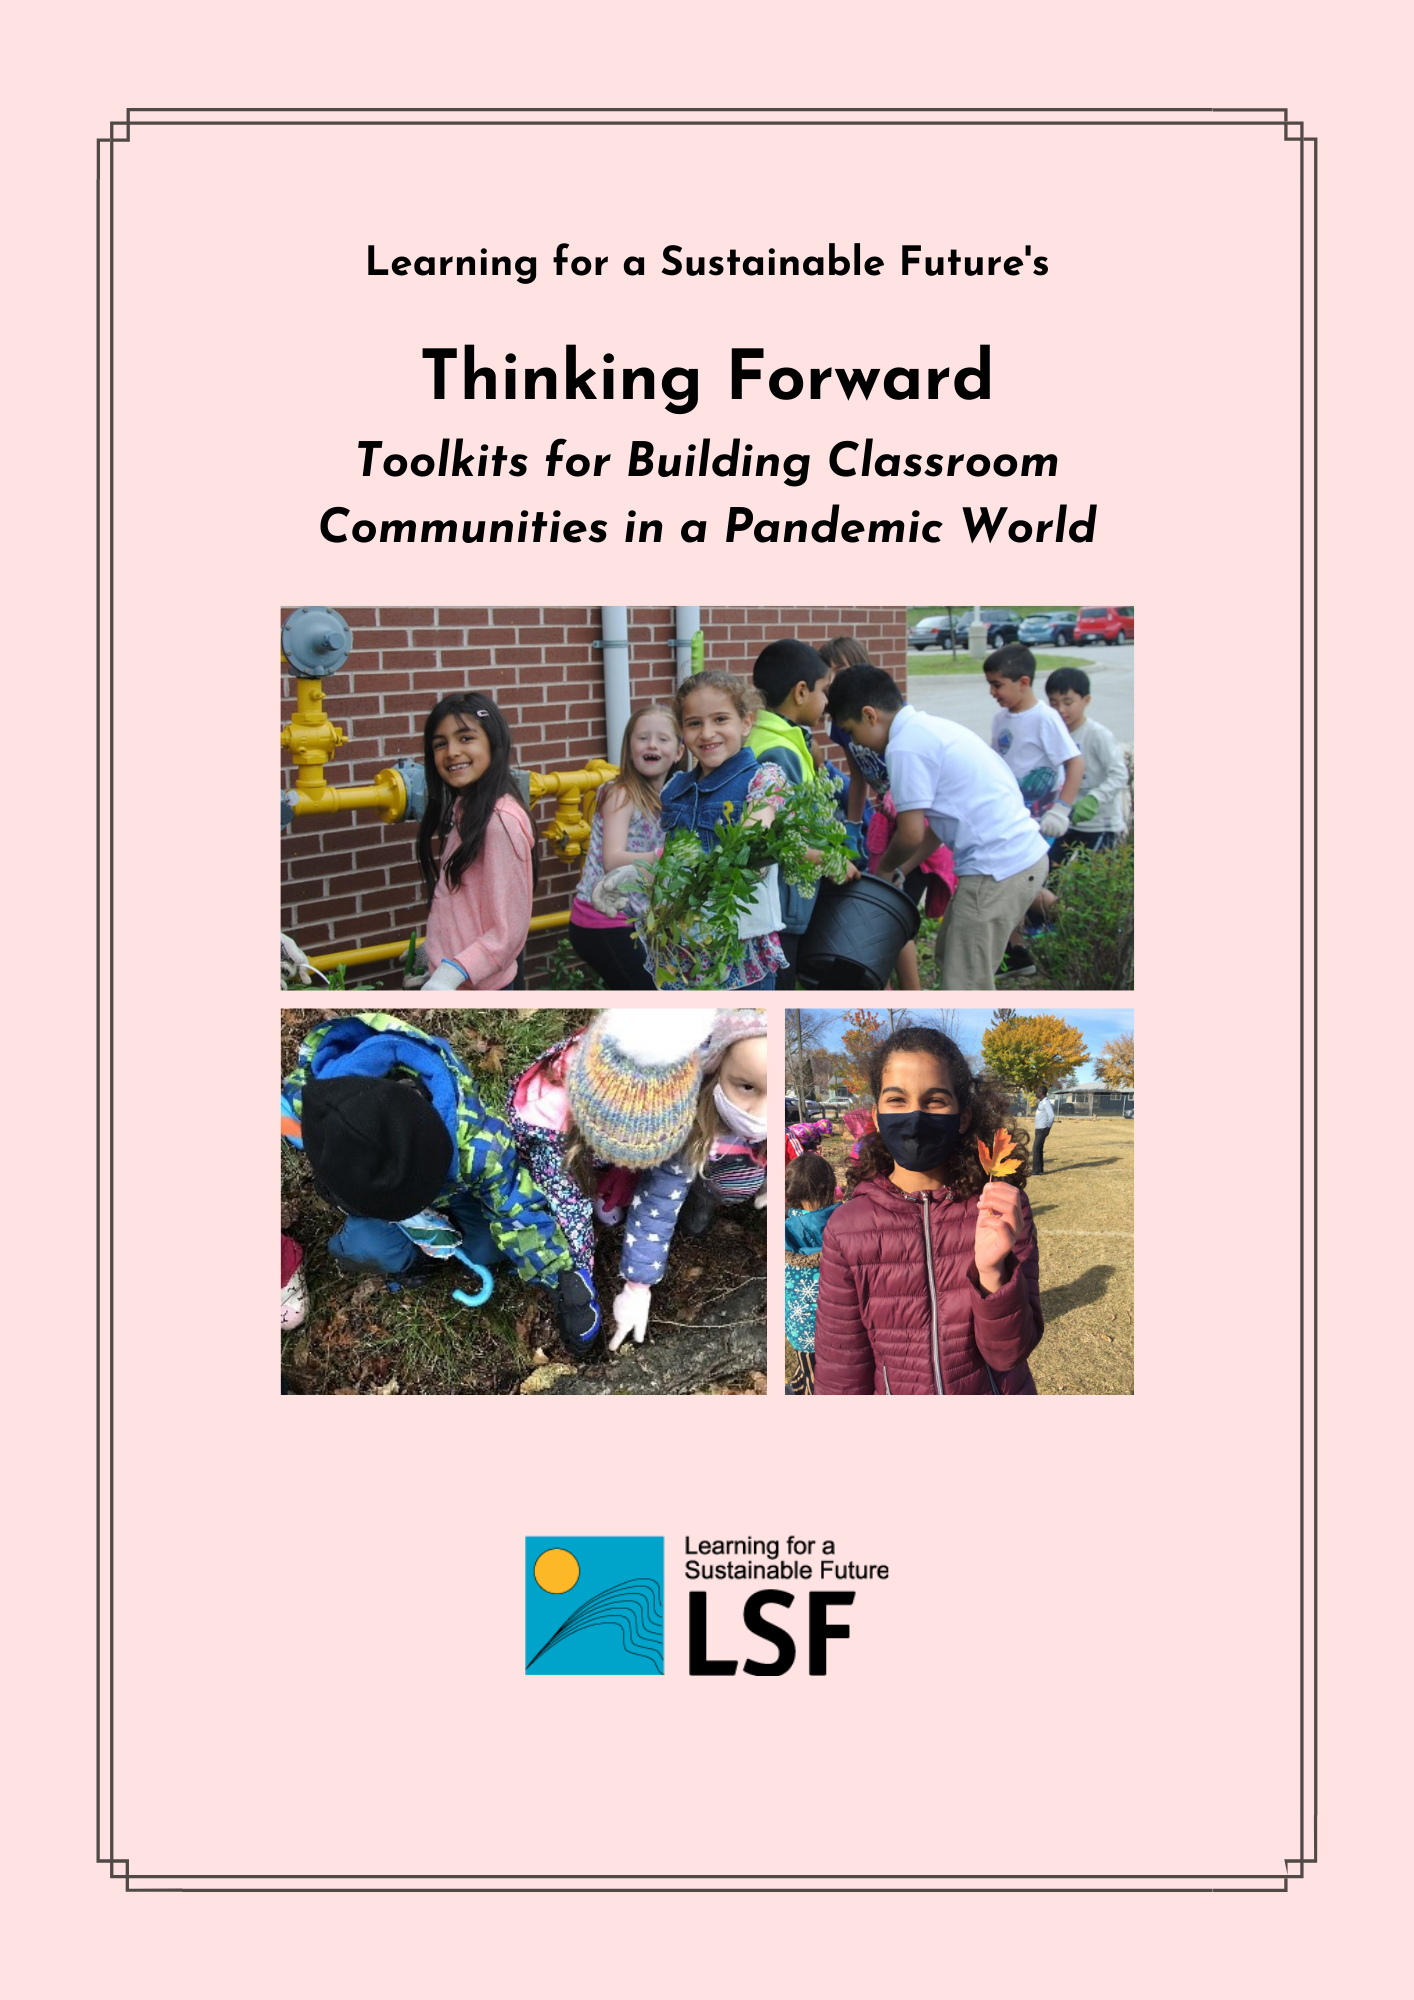 Thinking Forward Toolkits: Back to School Toolkits for Building Classroom Communities in a Pandemic World